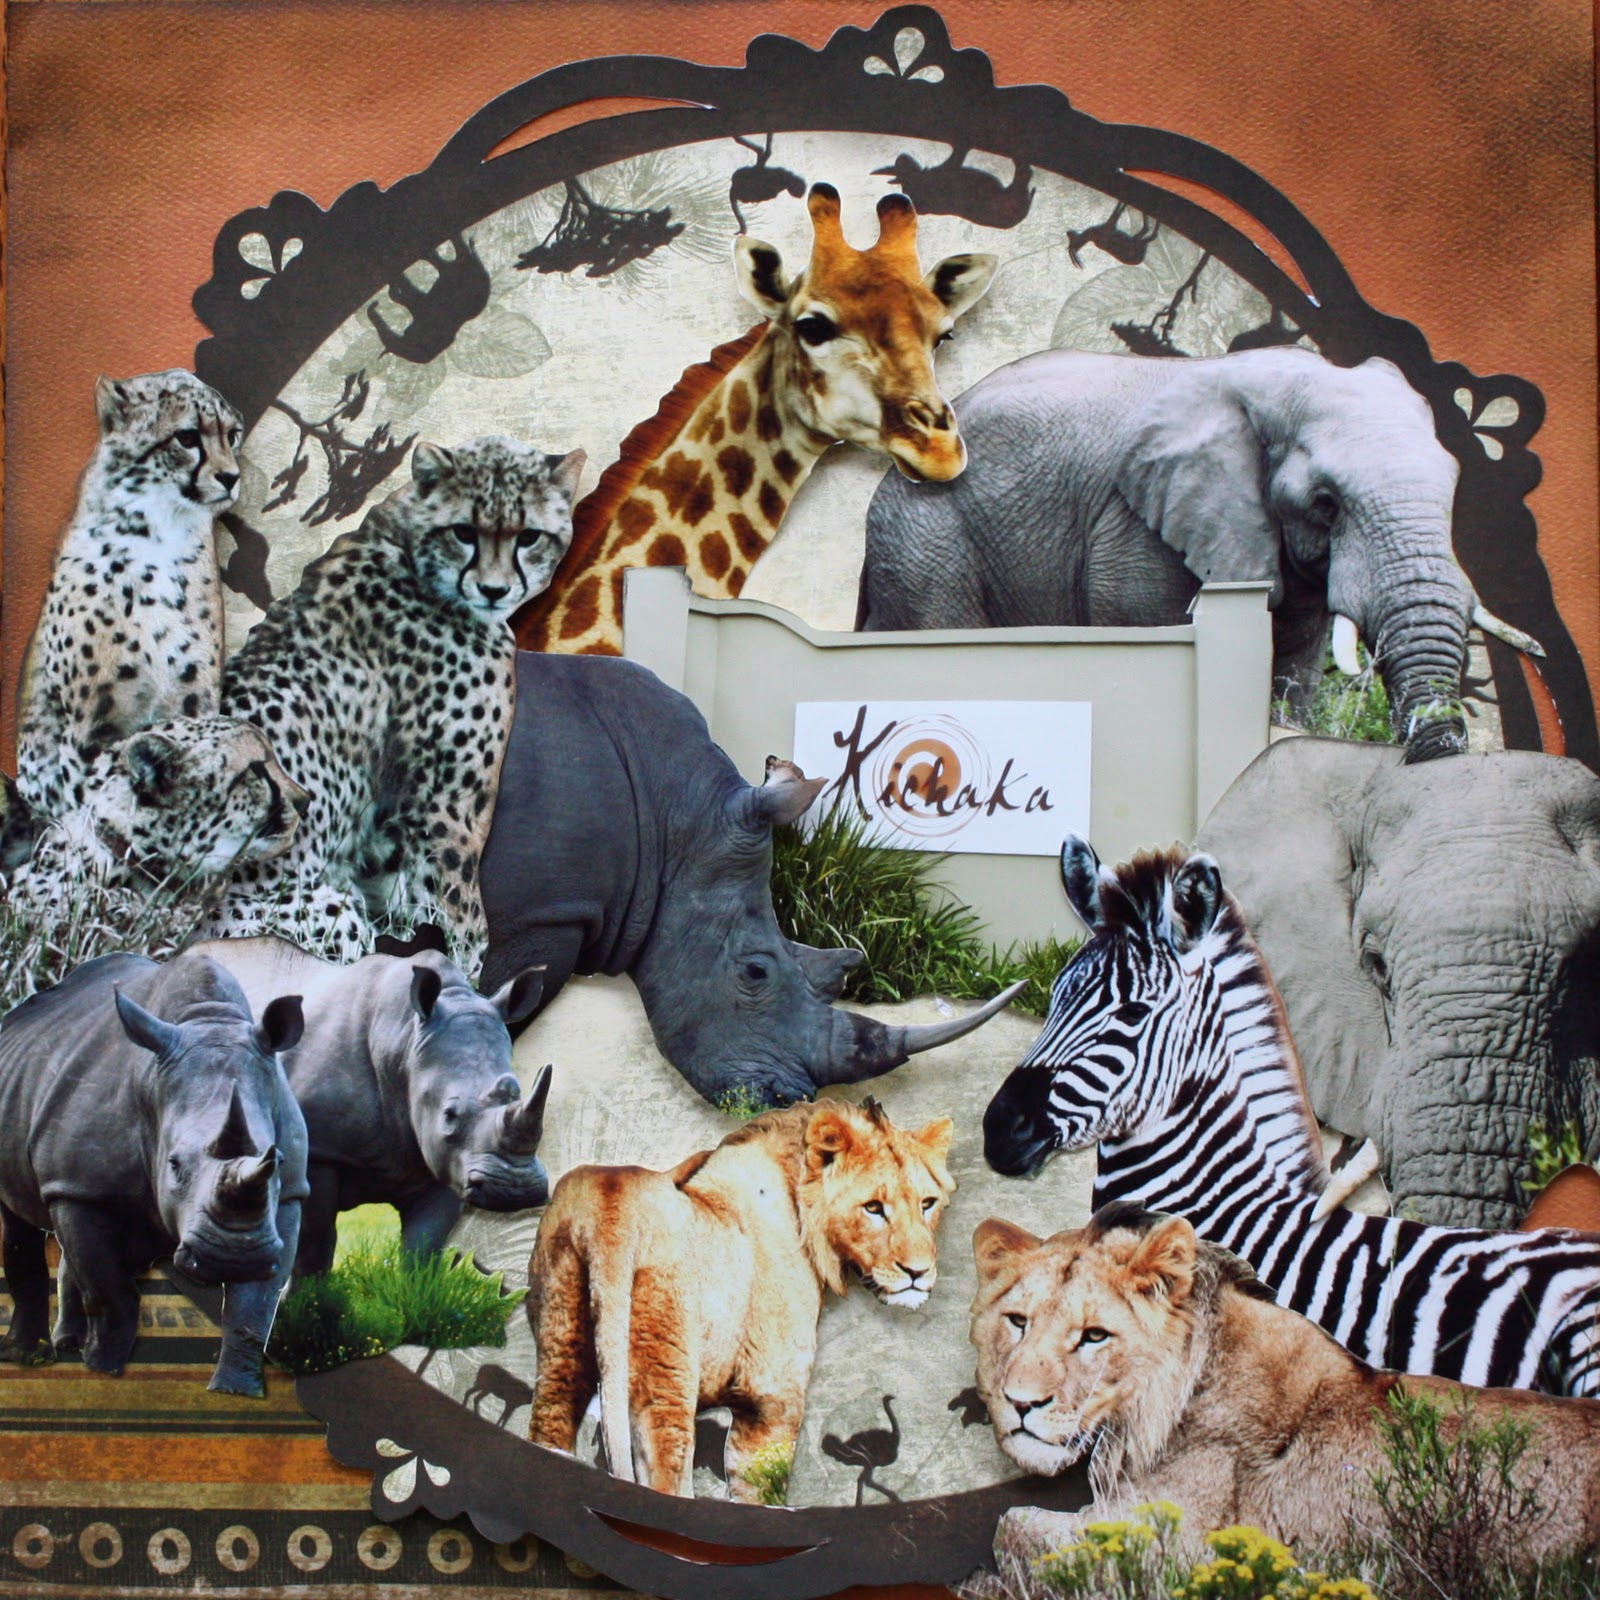 Scrapbook ideas zoo - Collage Of Photo Doubles Better Than Just Throwing Them Out